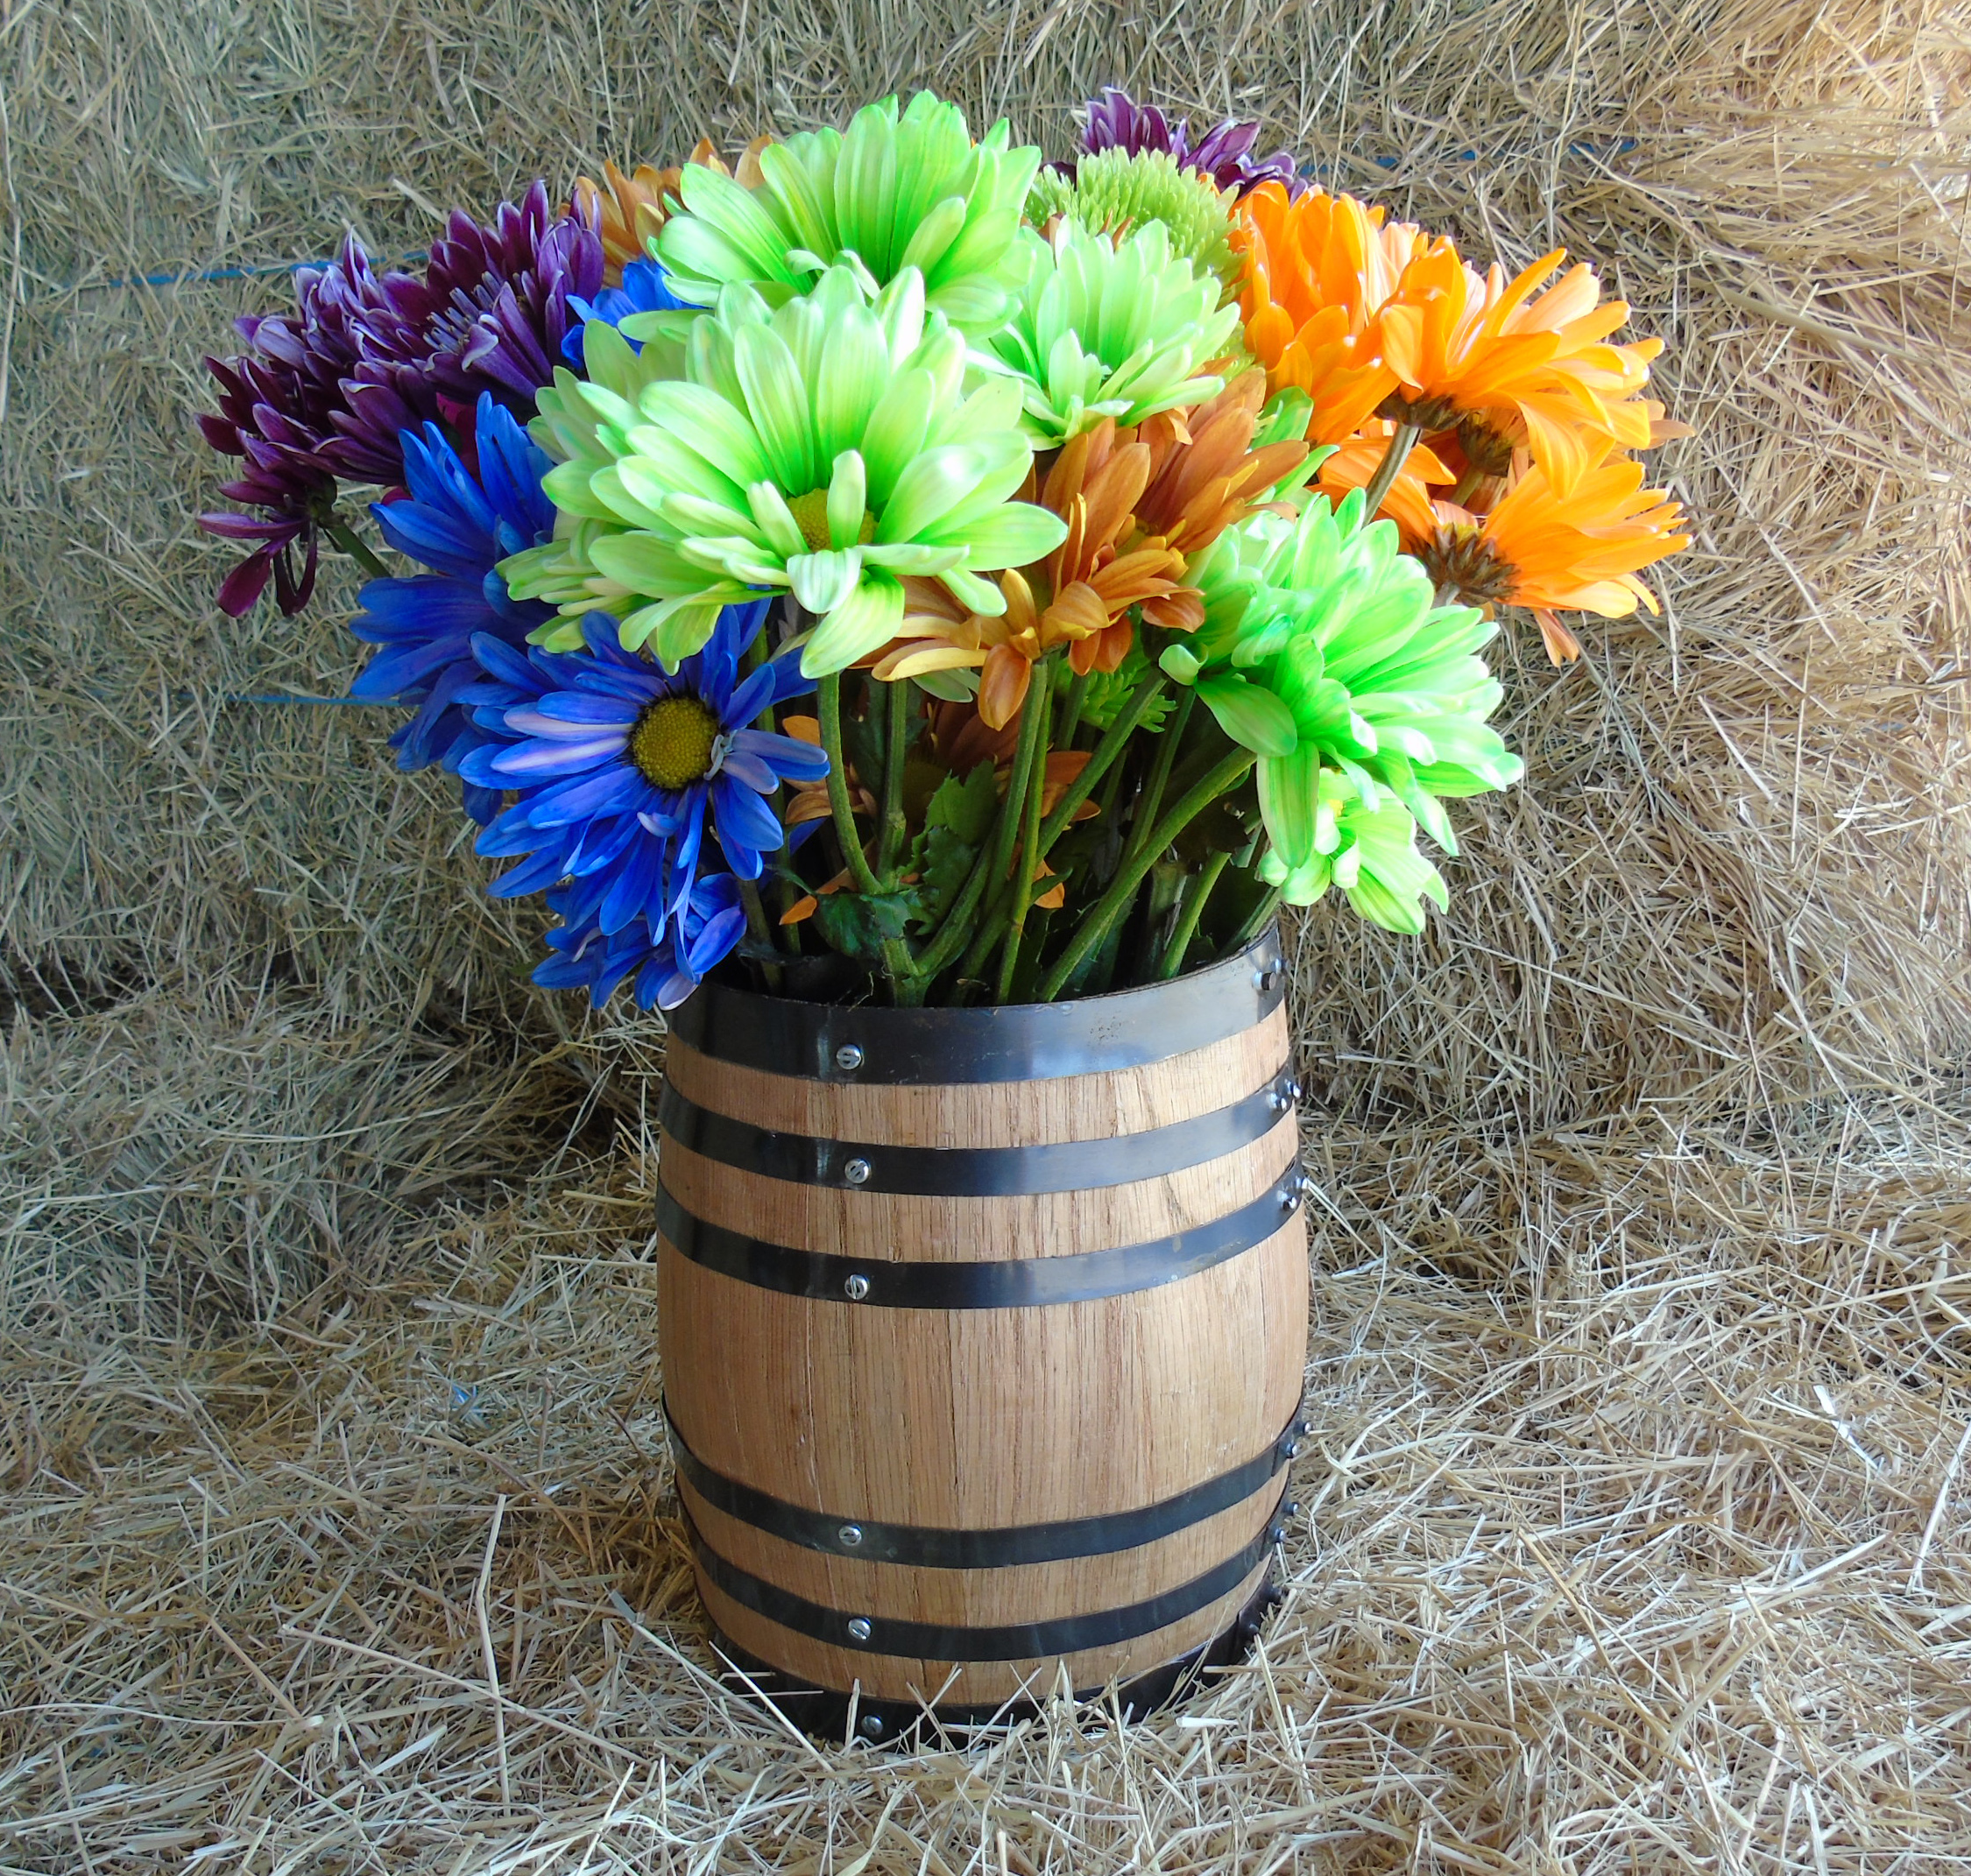 Oak Barrel Centerpiece Flower Vase Mini Oak Barrels